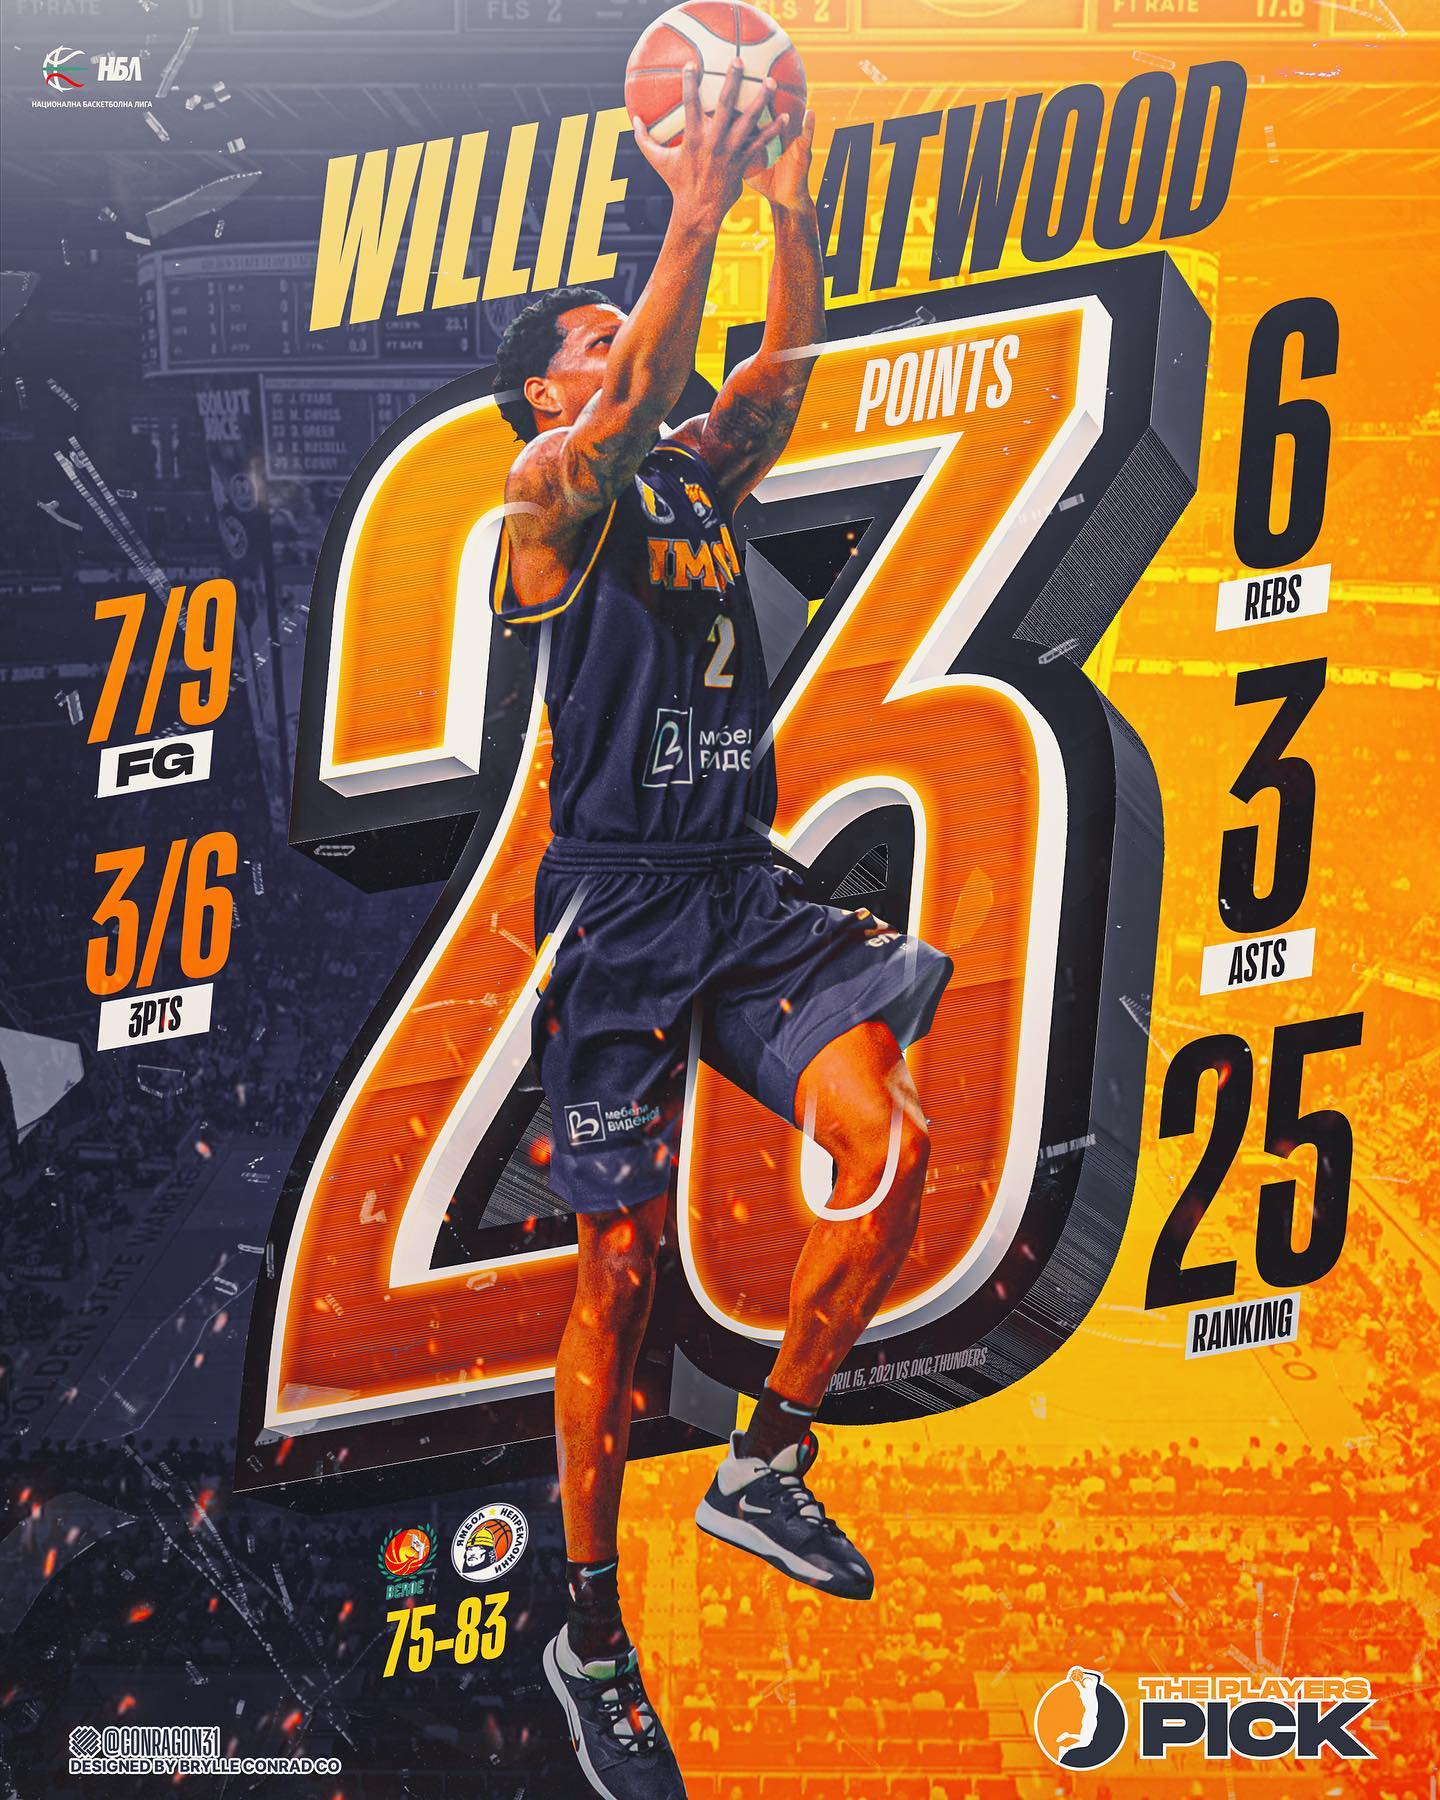 Willie Atwood led Yambol to Playoffs with 23 points & 25 ranking vs Beroe!